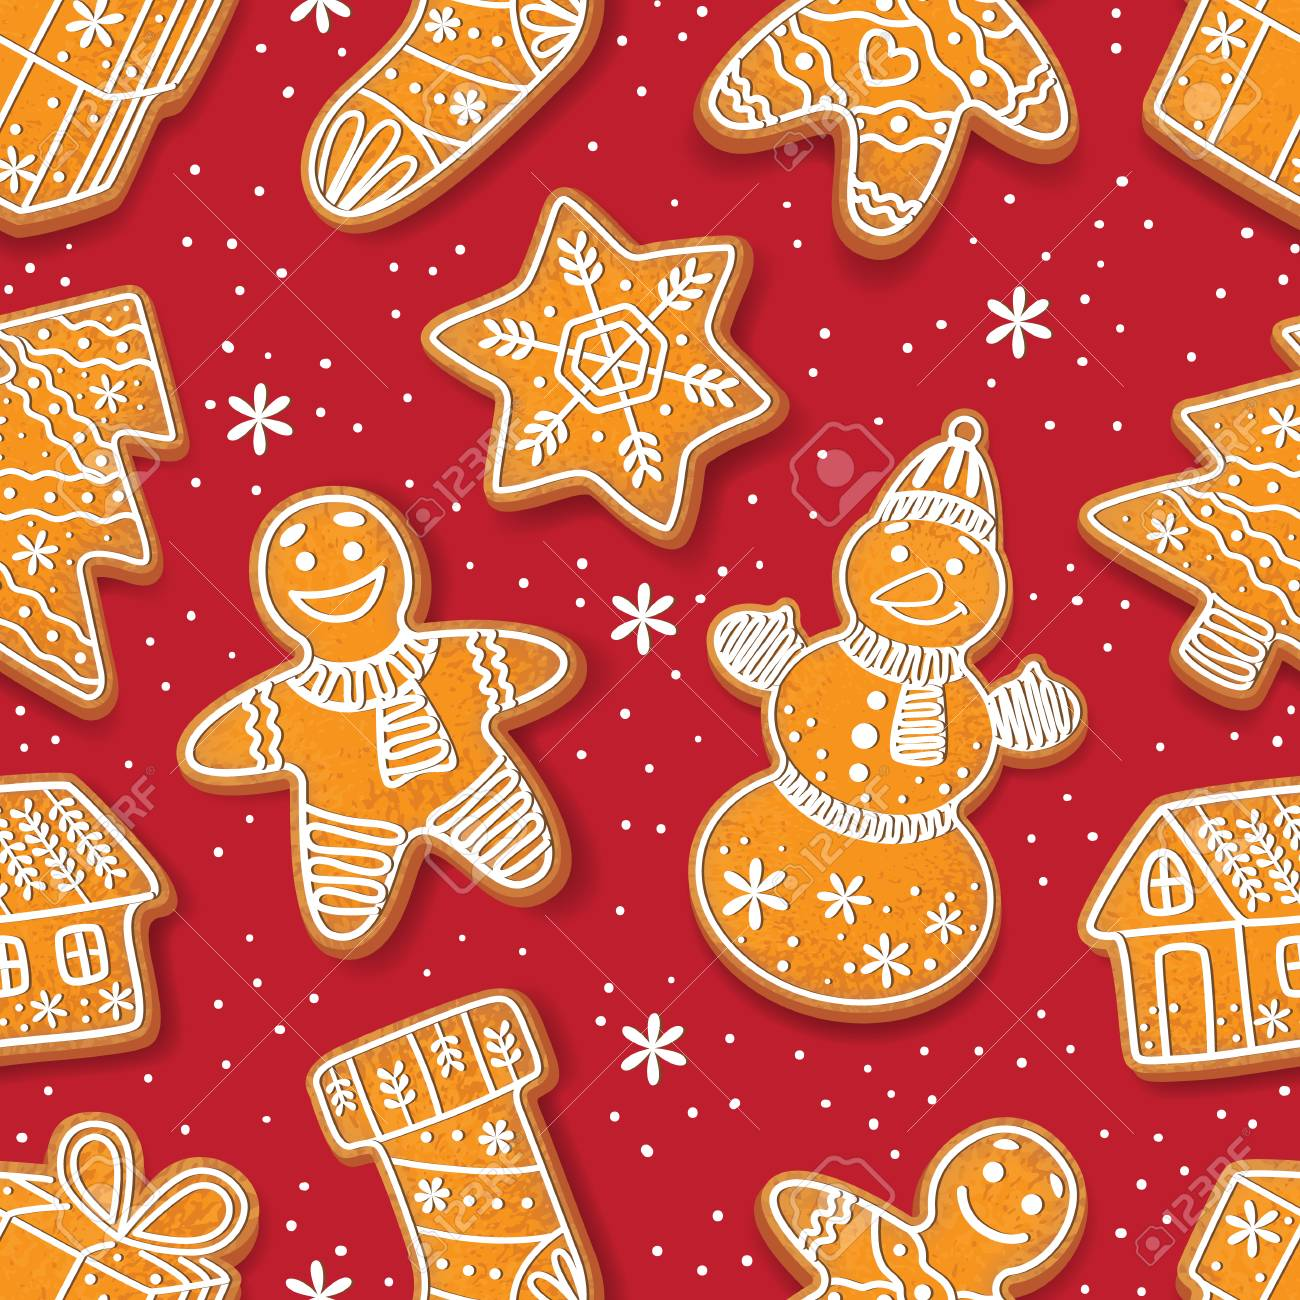 Christmas Gingerbread House Cartoon.Seamless Pattern Formed By Glazed Homemade Christmas Gingerbread